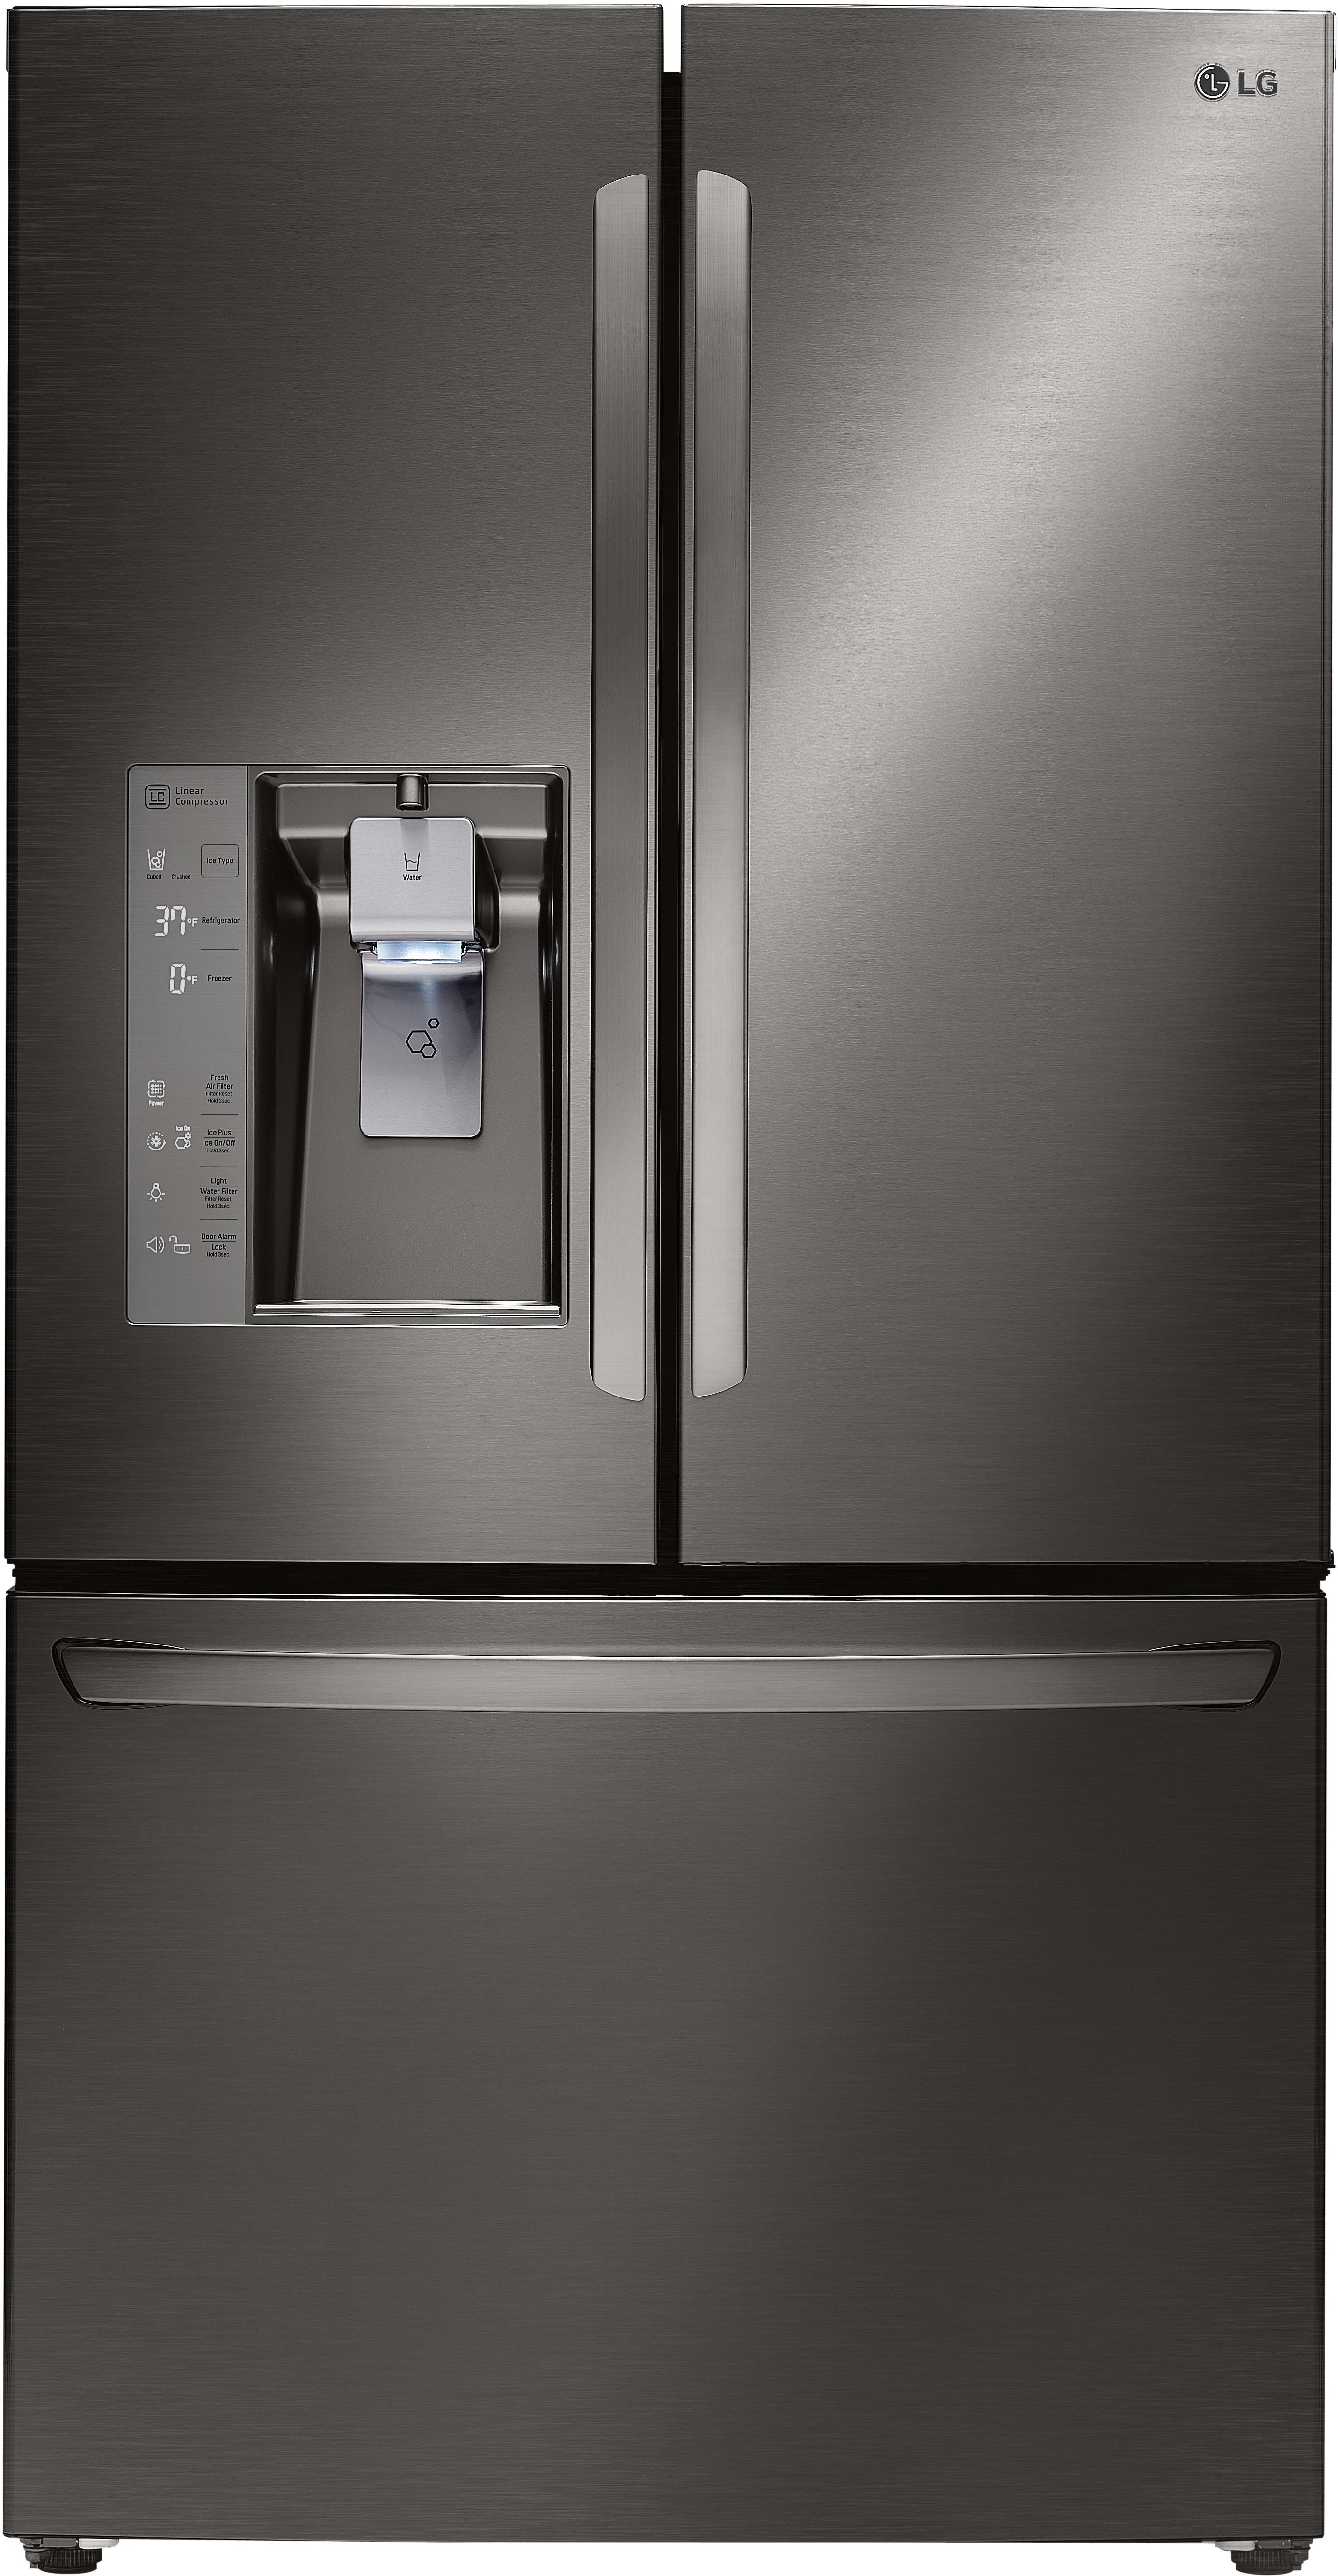 LG 36 Inch Counter Depth French Door Refrigerator